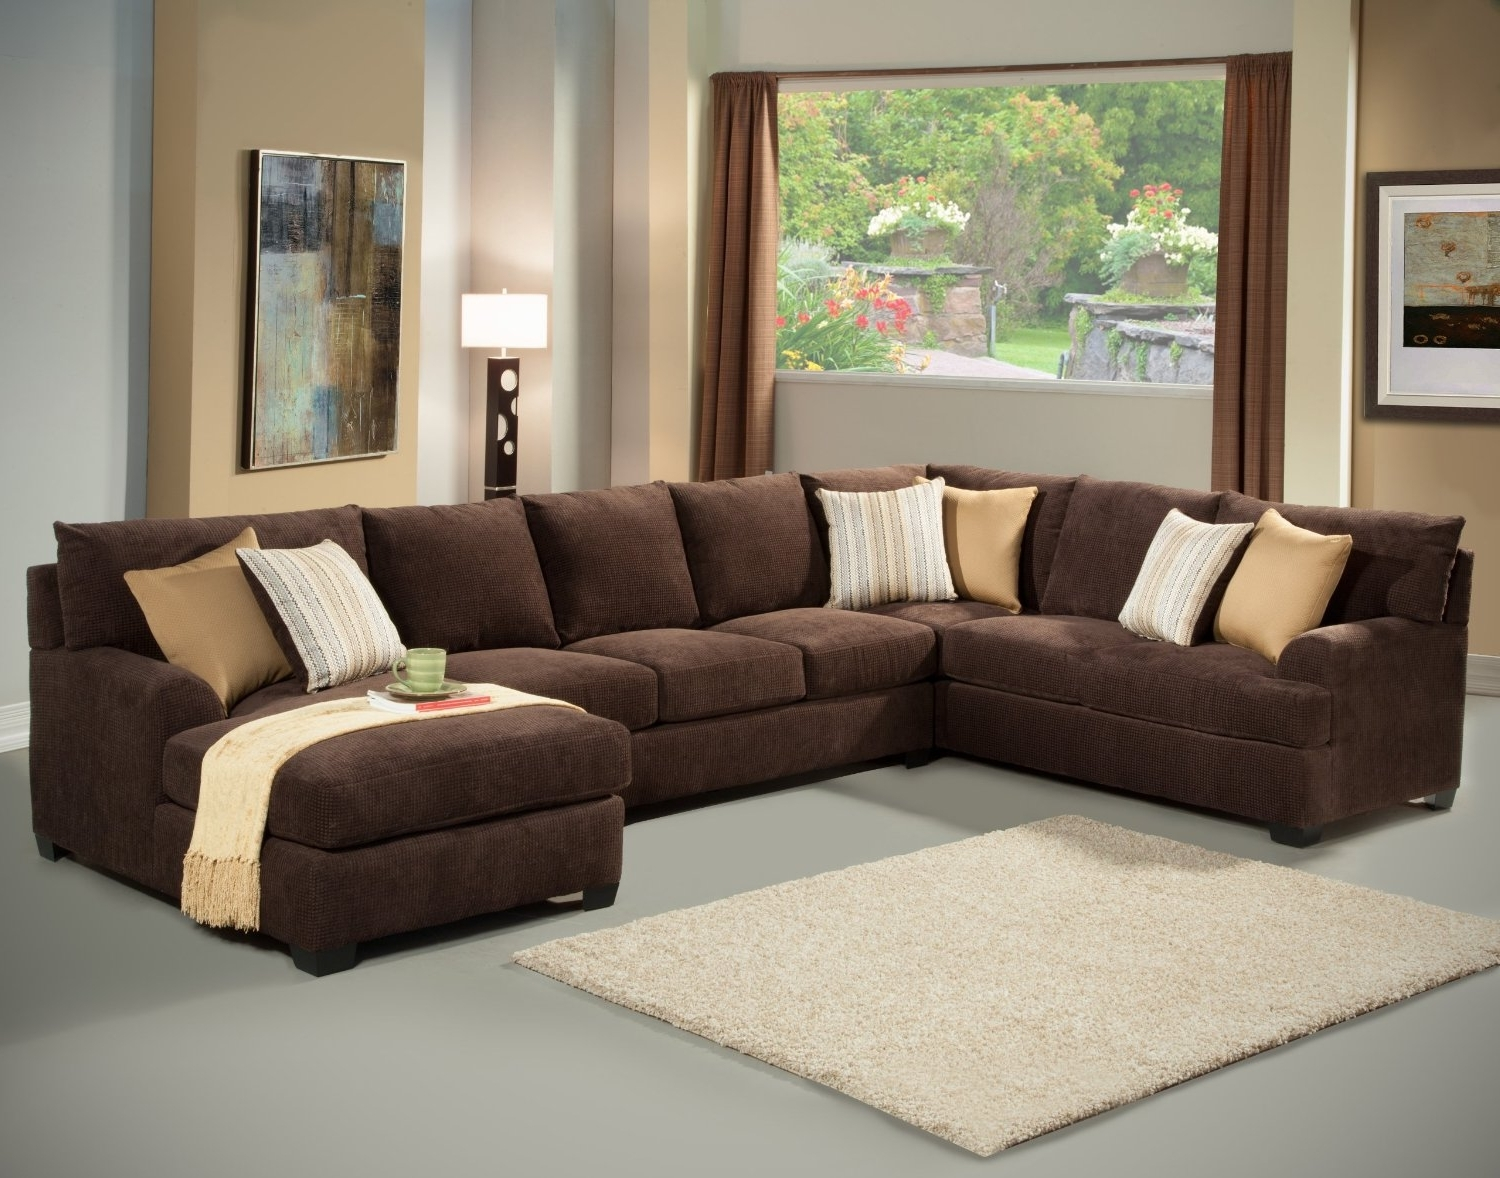 Best And Newest L Shaped Couches With Chaise Throughout Modular Sleeper Sofa Chaise Sectional Sleeper L Shaped Sleeper (View 13 of 15)